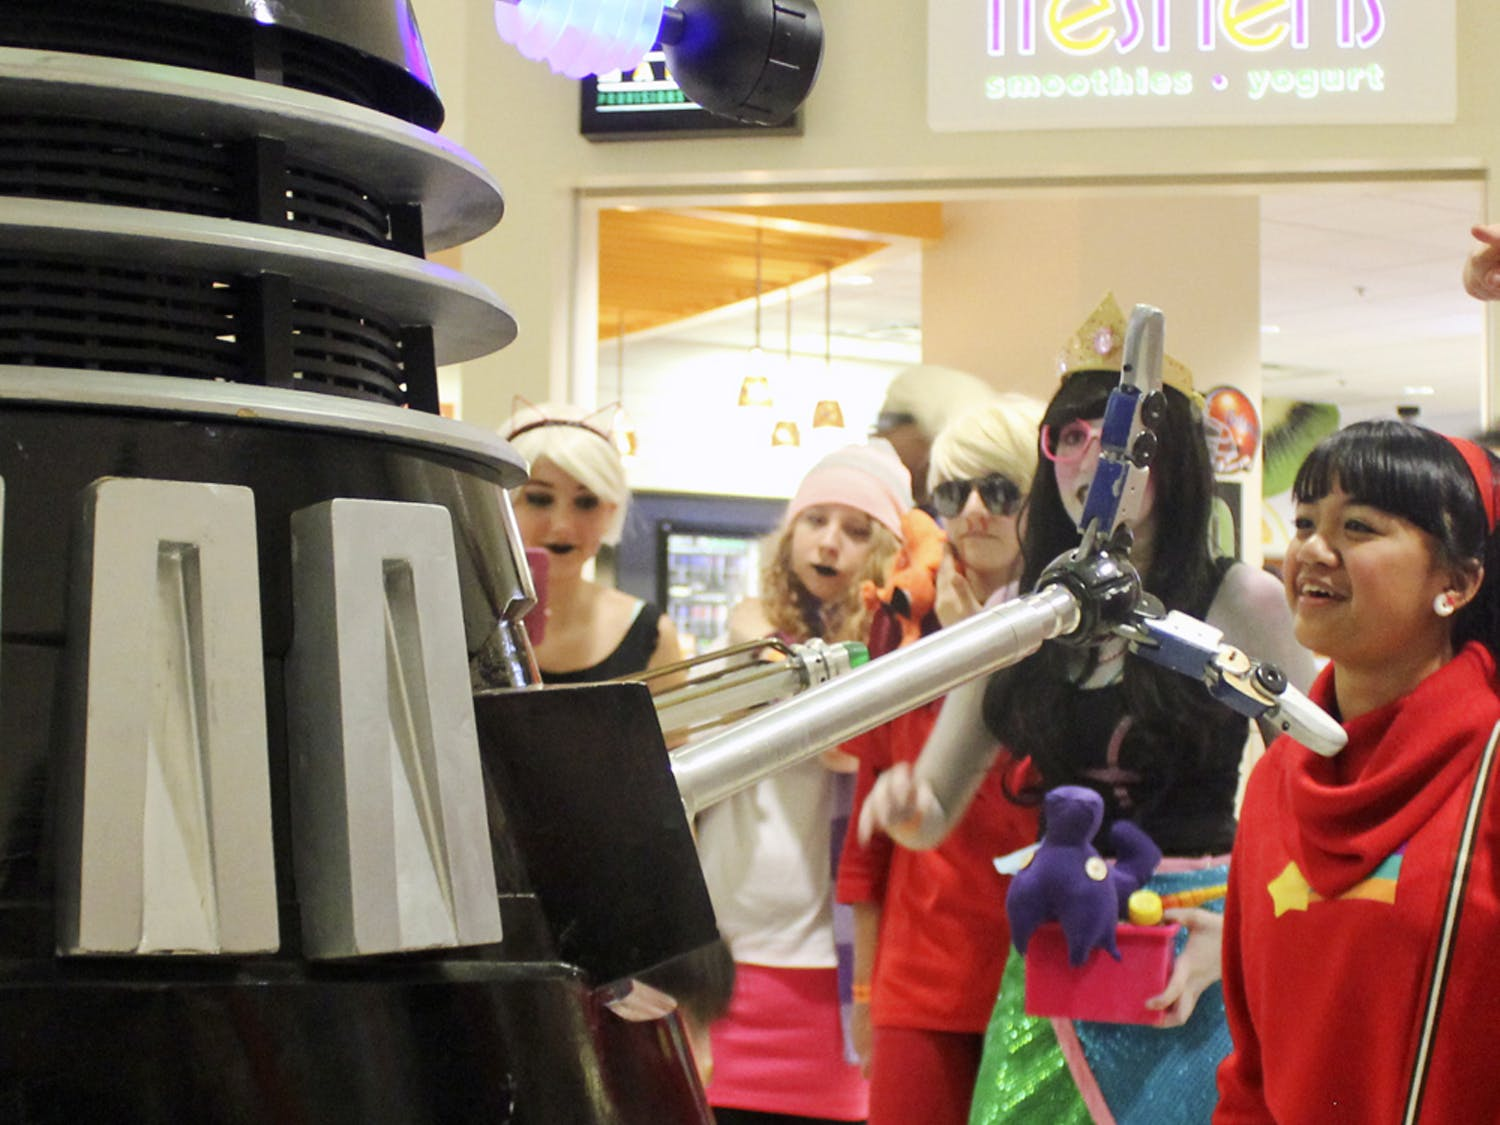 A Dalek, a creature from the British television program Doctor Who, roams through the Reitz Union on Saturday during SwampCon. The convention was attended by people dressed up as characters from different fictional series.